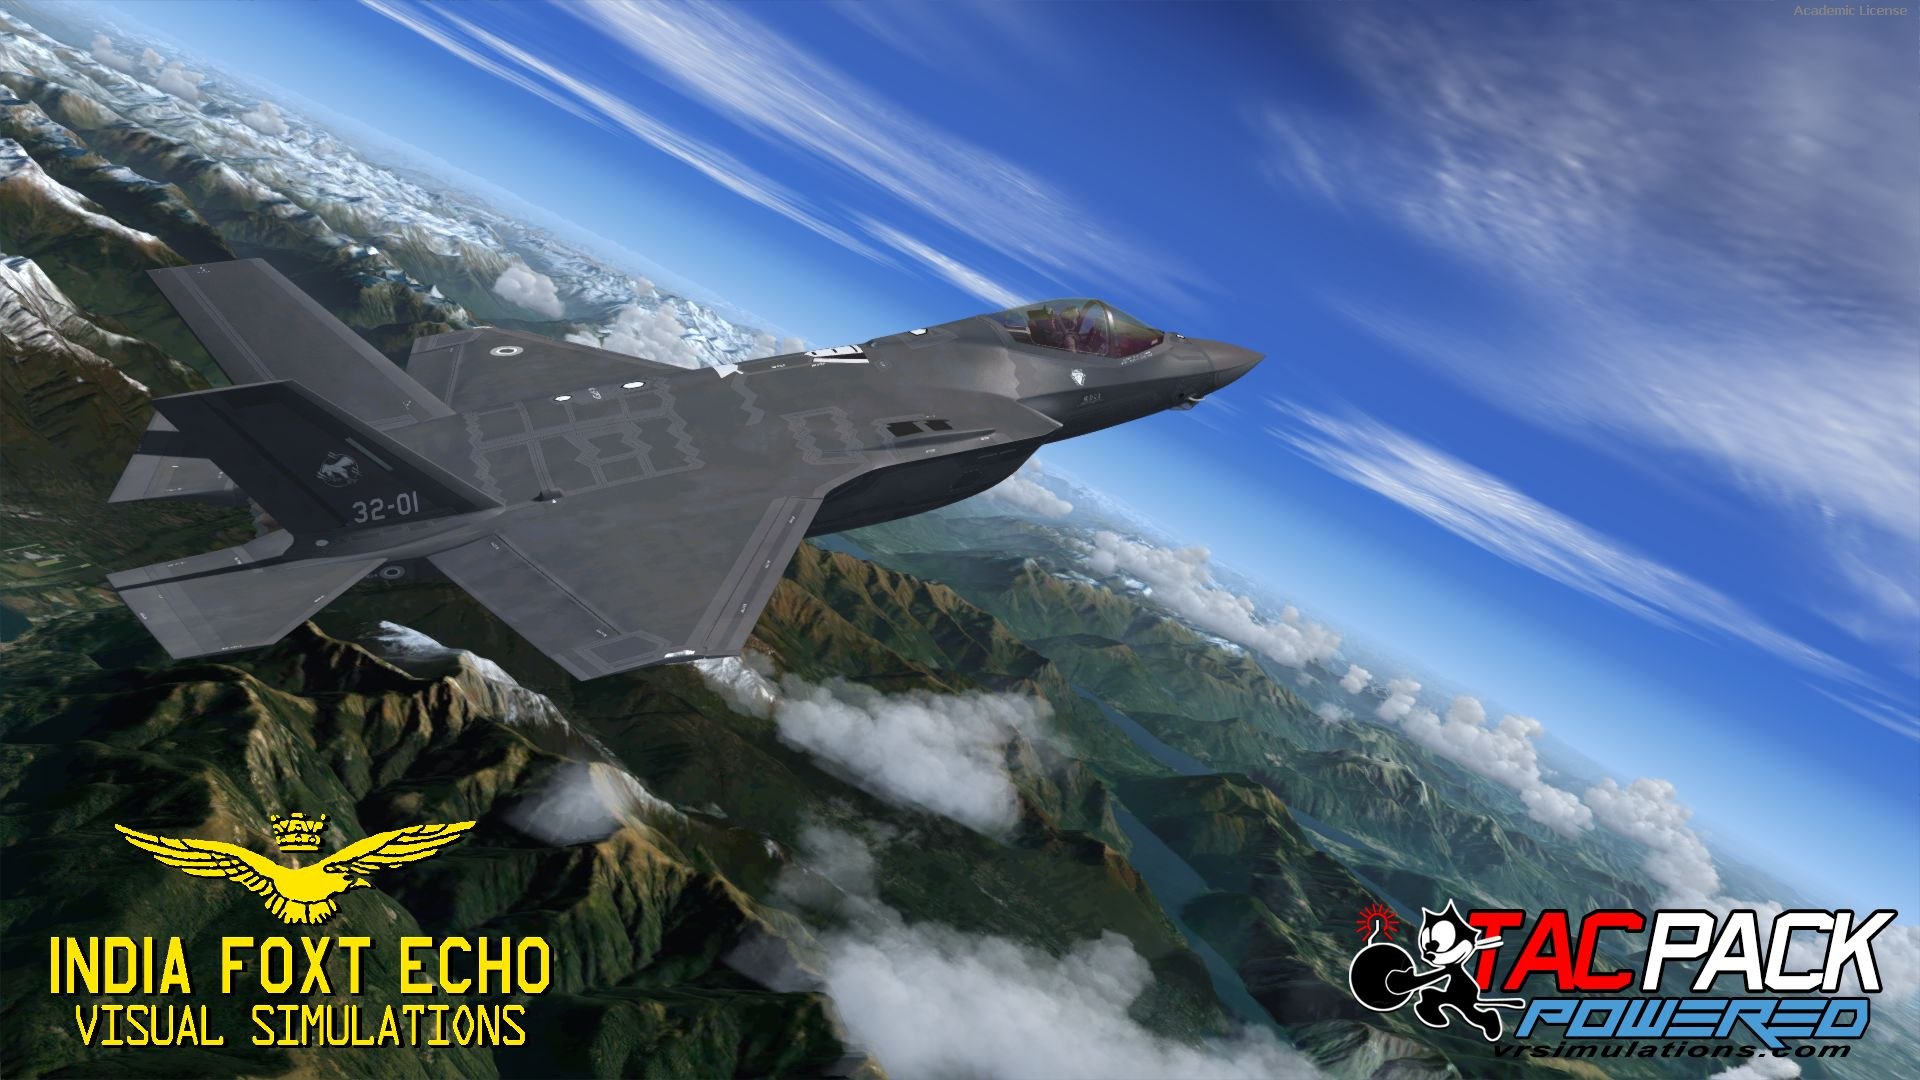 INDIAFOXTECHO - F-35 LIGHTNING II PACKAGE P3D